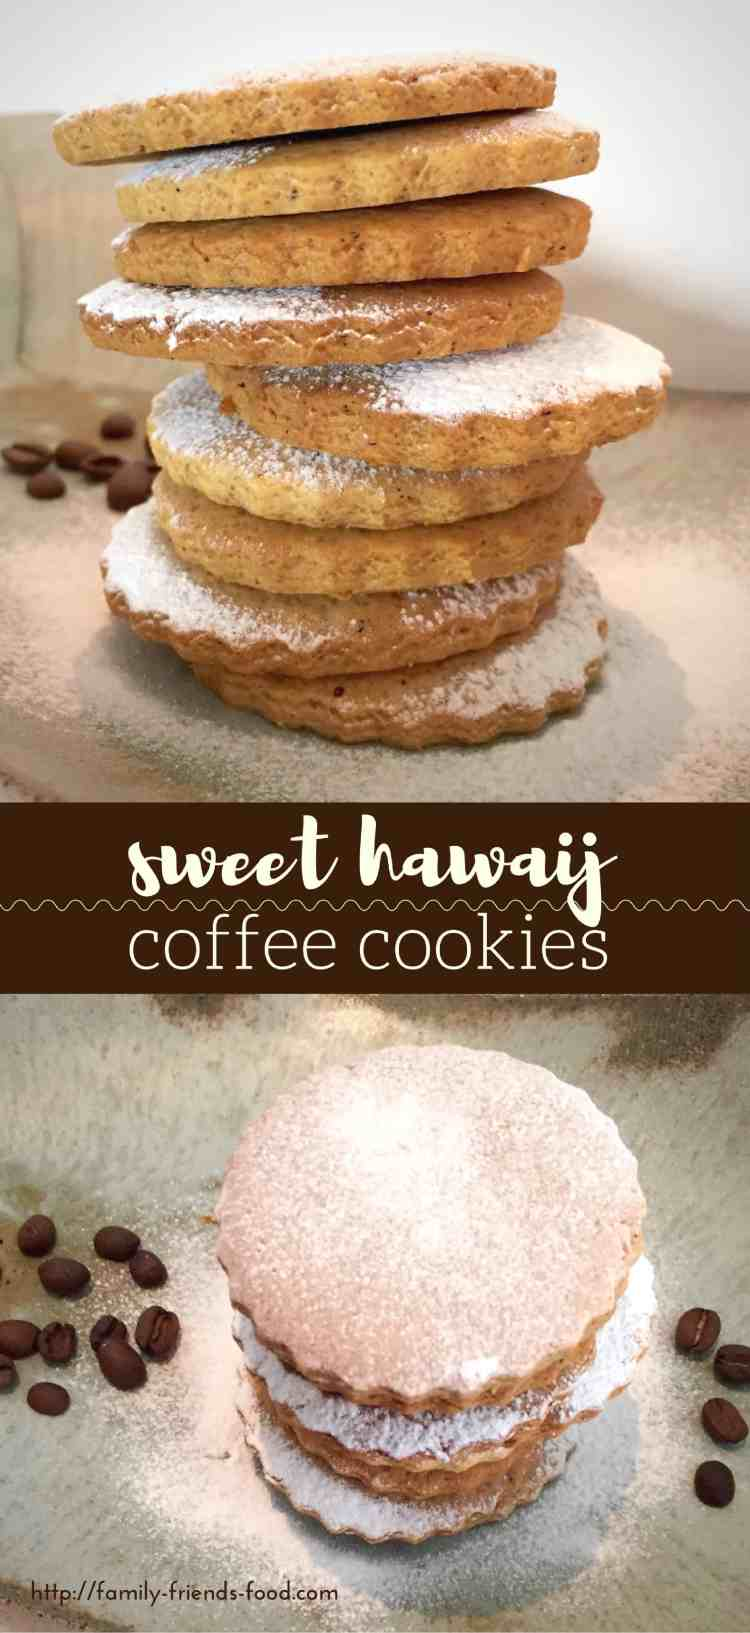 Crisp delicious cookies flavoured with sweet hawaij spices and real coffee. A taste of the Middle East and perfect dipped in your favourite brew.